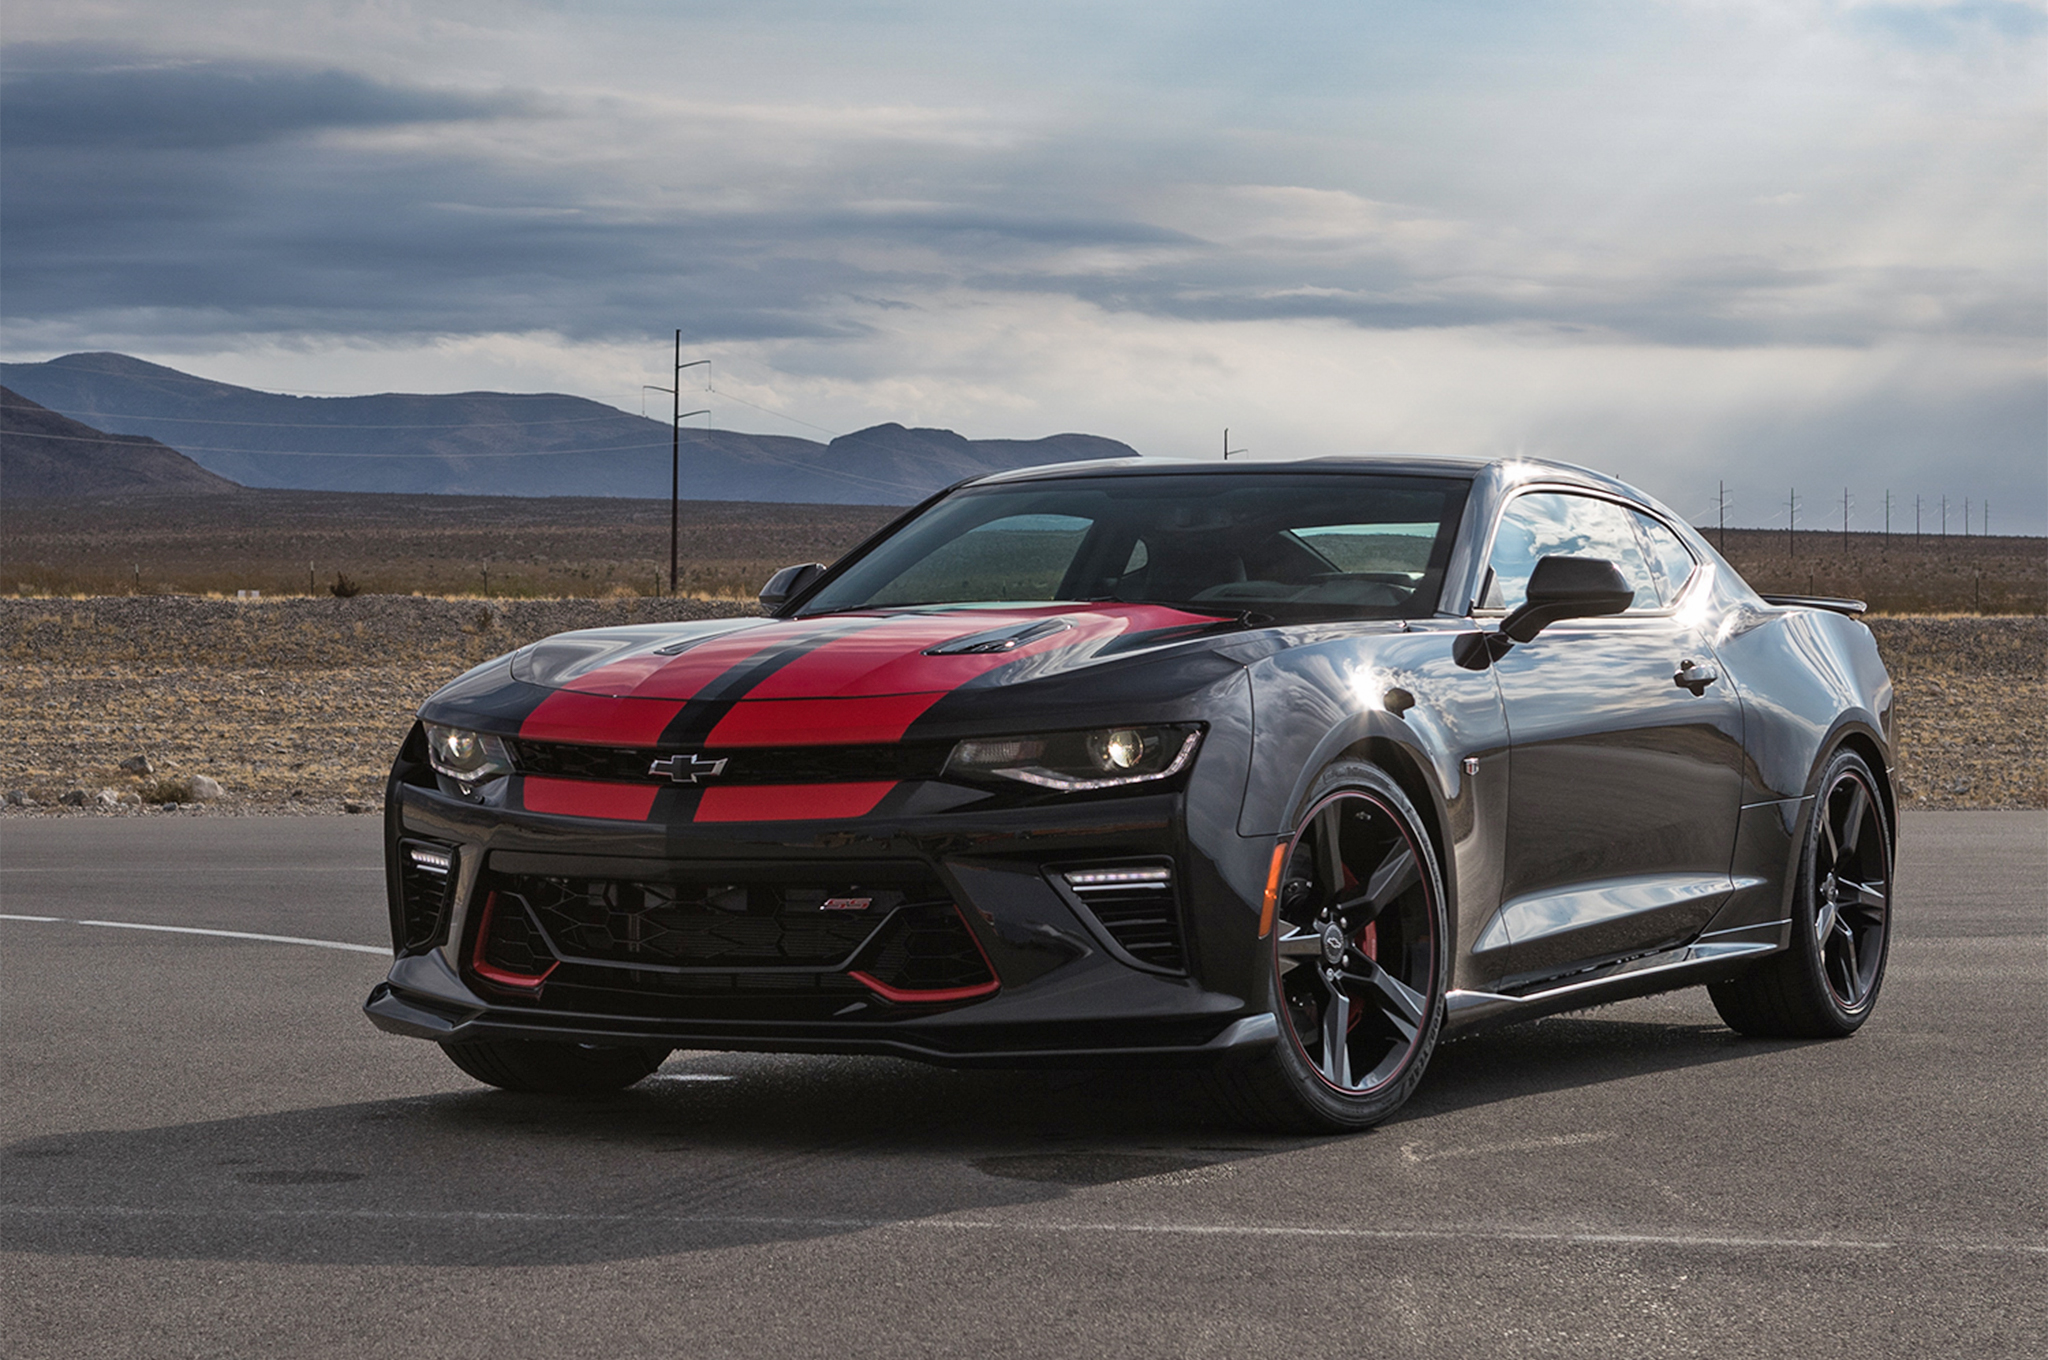 2017 camaro ss wallpaper image 2018 printable calendars posters images wallpapers free. Black Bedroom Furniture Sets. Home Design Ideas